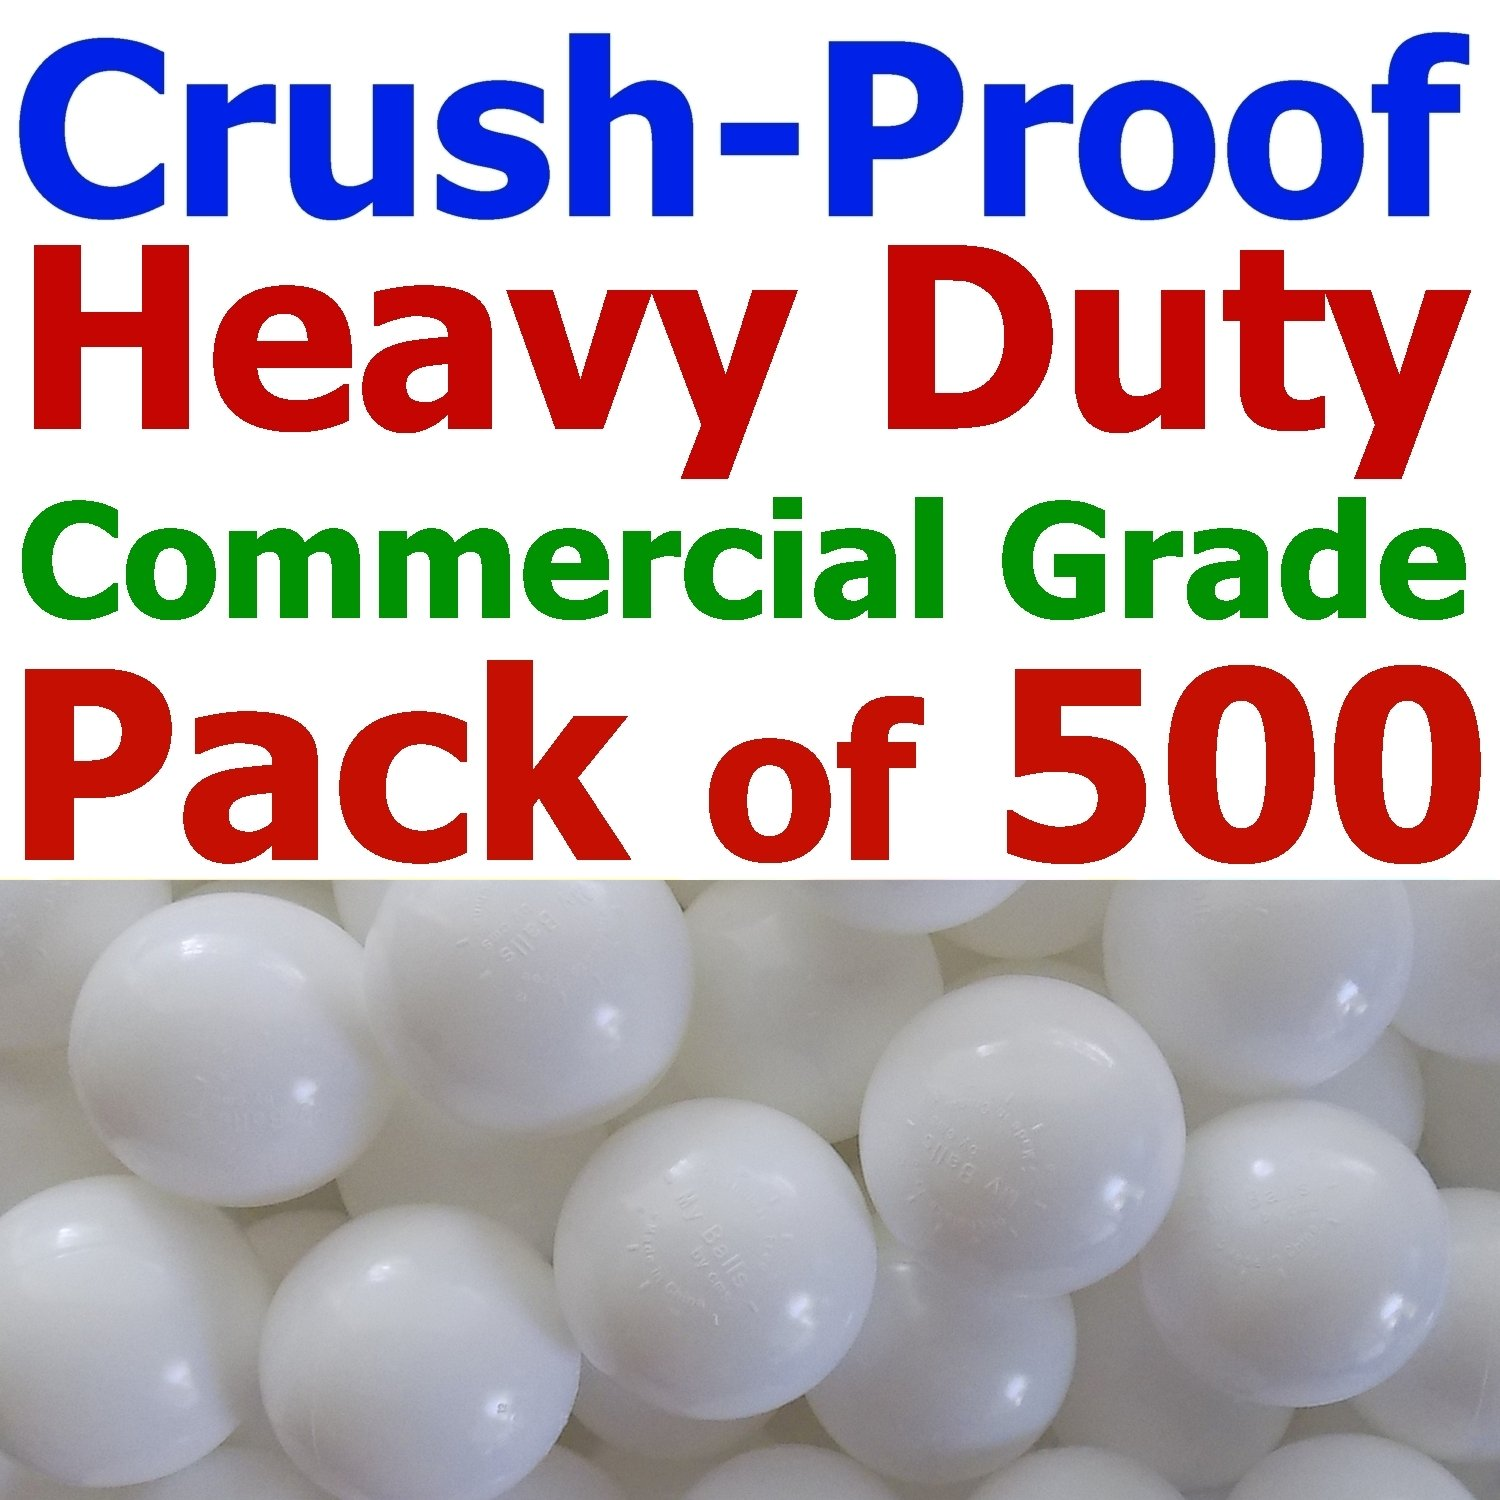 My Balls Pack of 500 Jumbo 3'' Snow-White Color Commercial Grade Ball Pit Balls - Air-Filled Crush-Proof in 5 Colors Phthalate Free BPA Free PVC Free